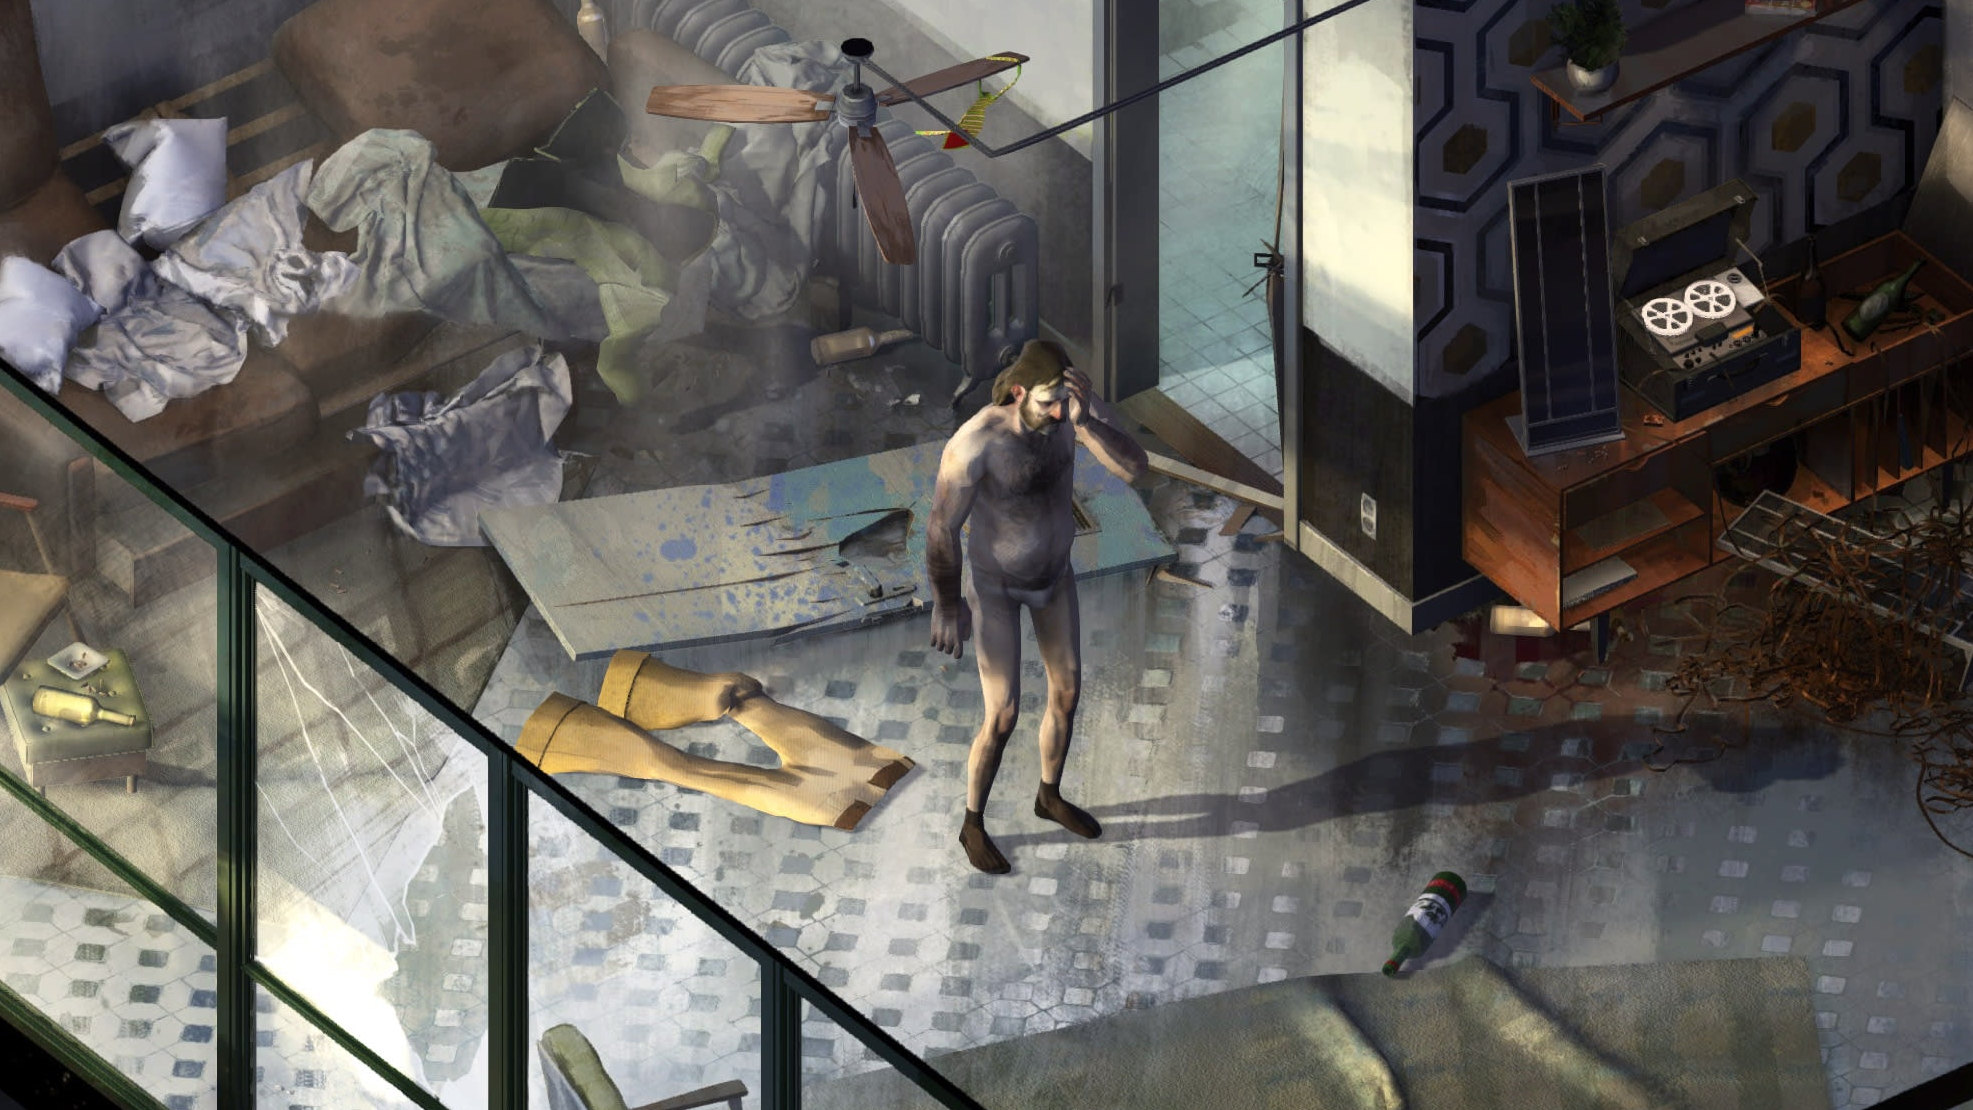 A shameful moment in a Disco Elysium screenshot.